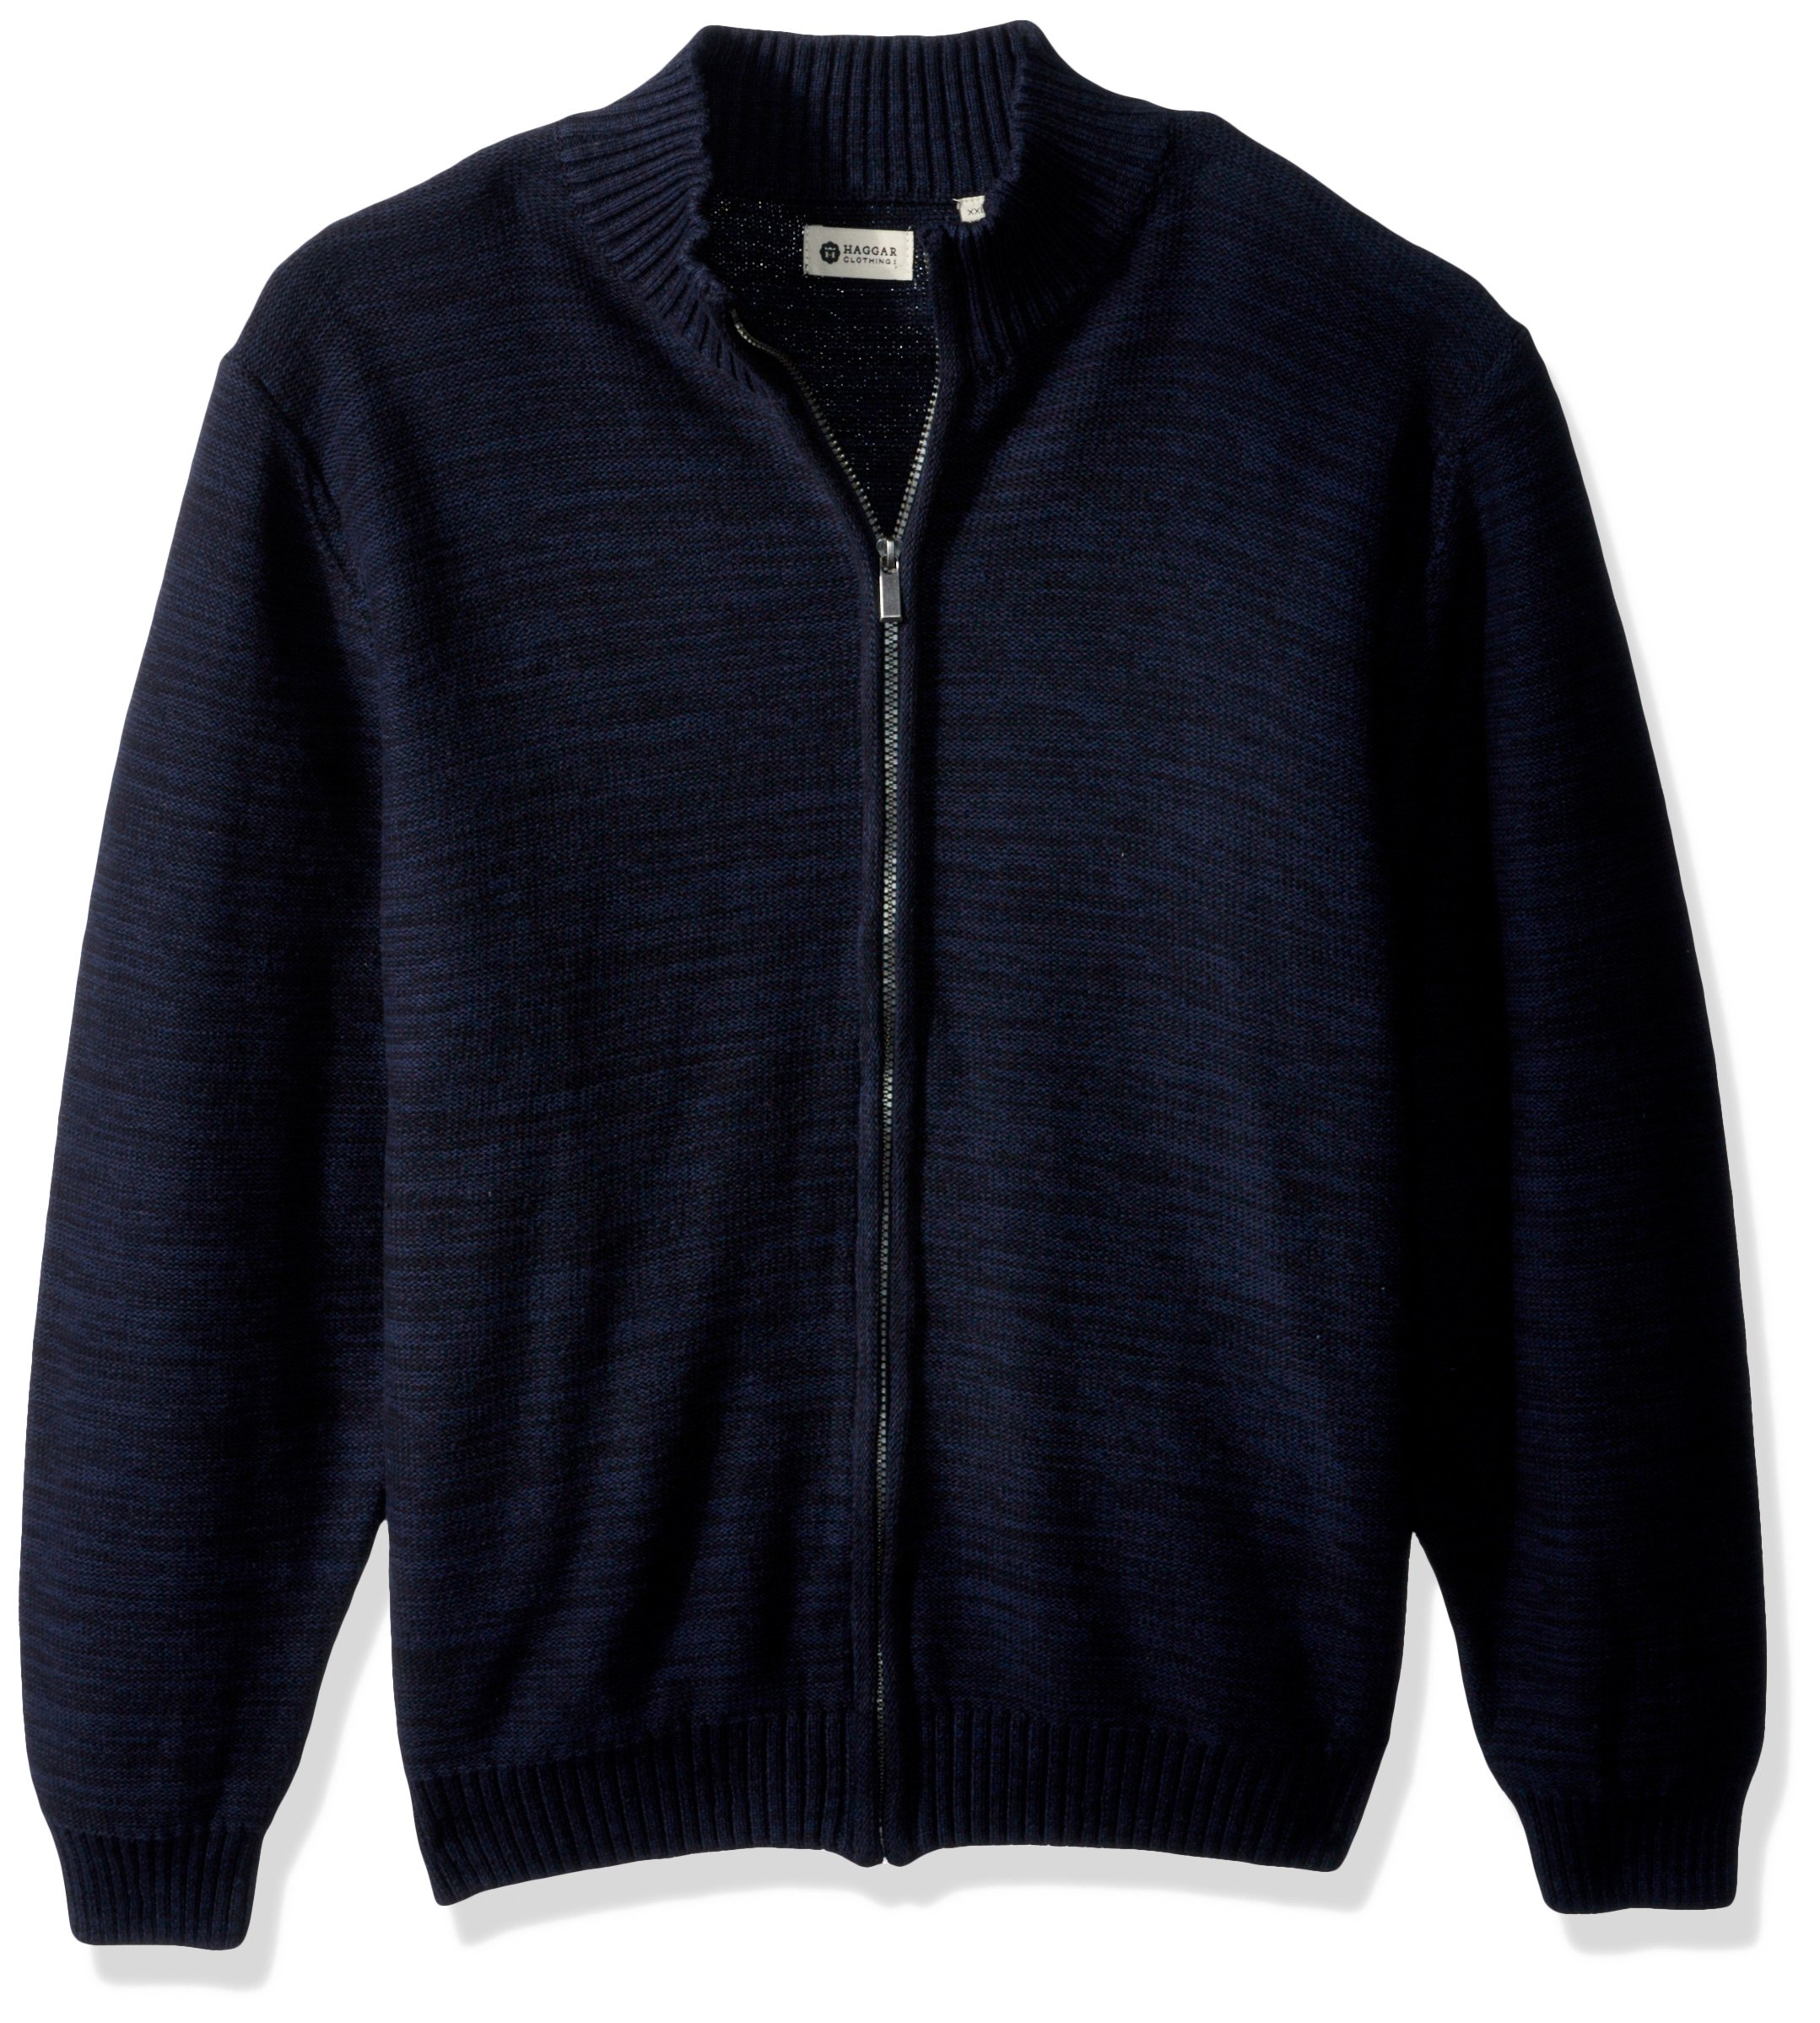 Haggar Men's Reverse Jersey Mechanical Marl Full Zip Sweater, Coast Marl, M